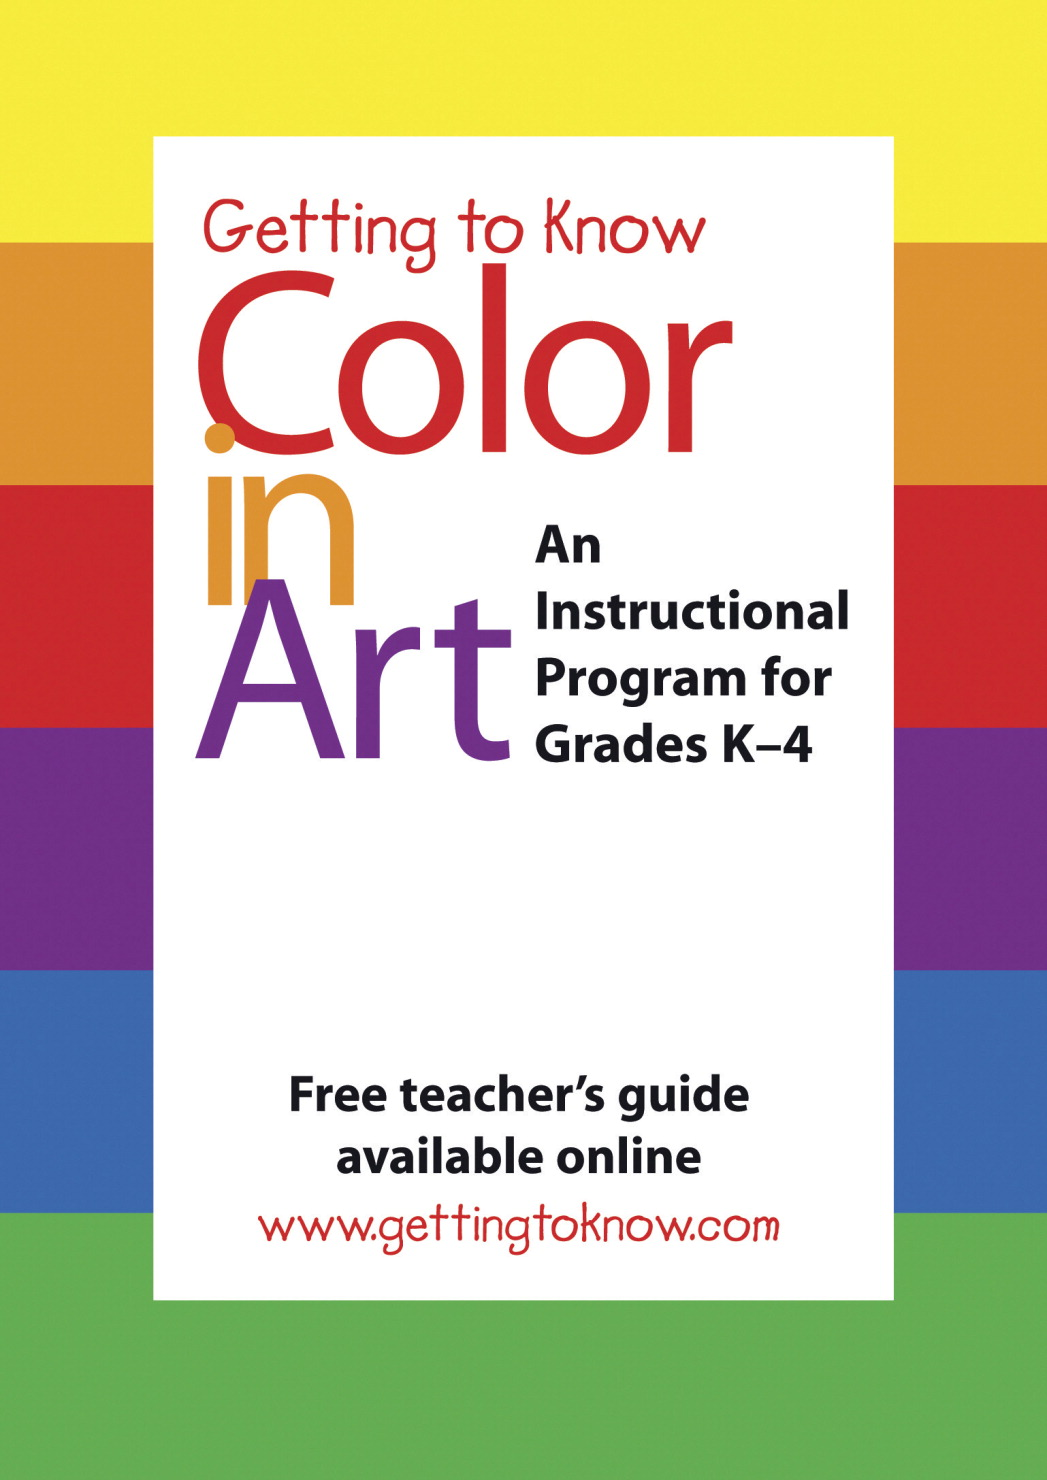 Getting to Know Color in Art DVD, 24 min, Grade K - 4